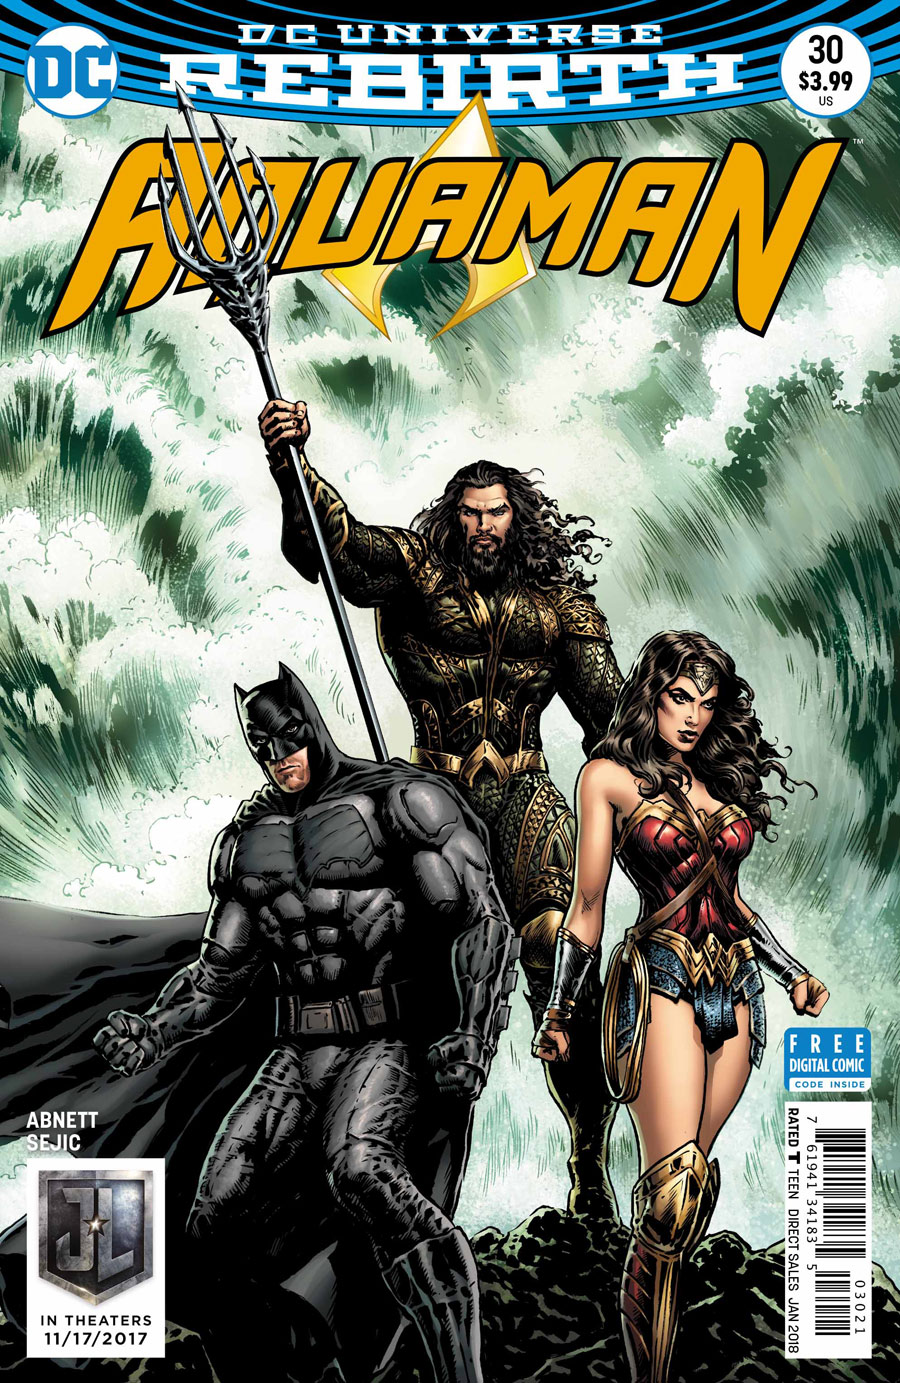 Aquaman Variant - DC Comics News